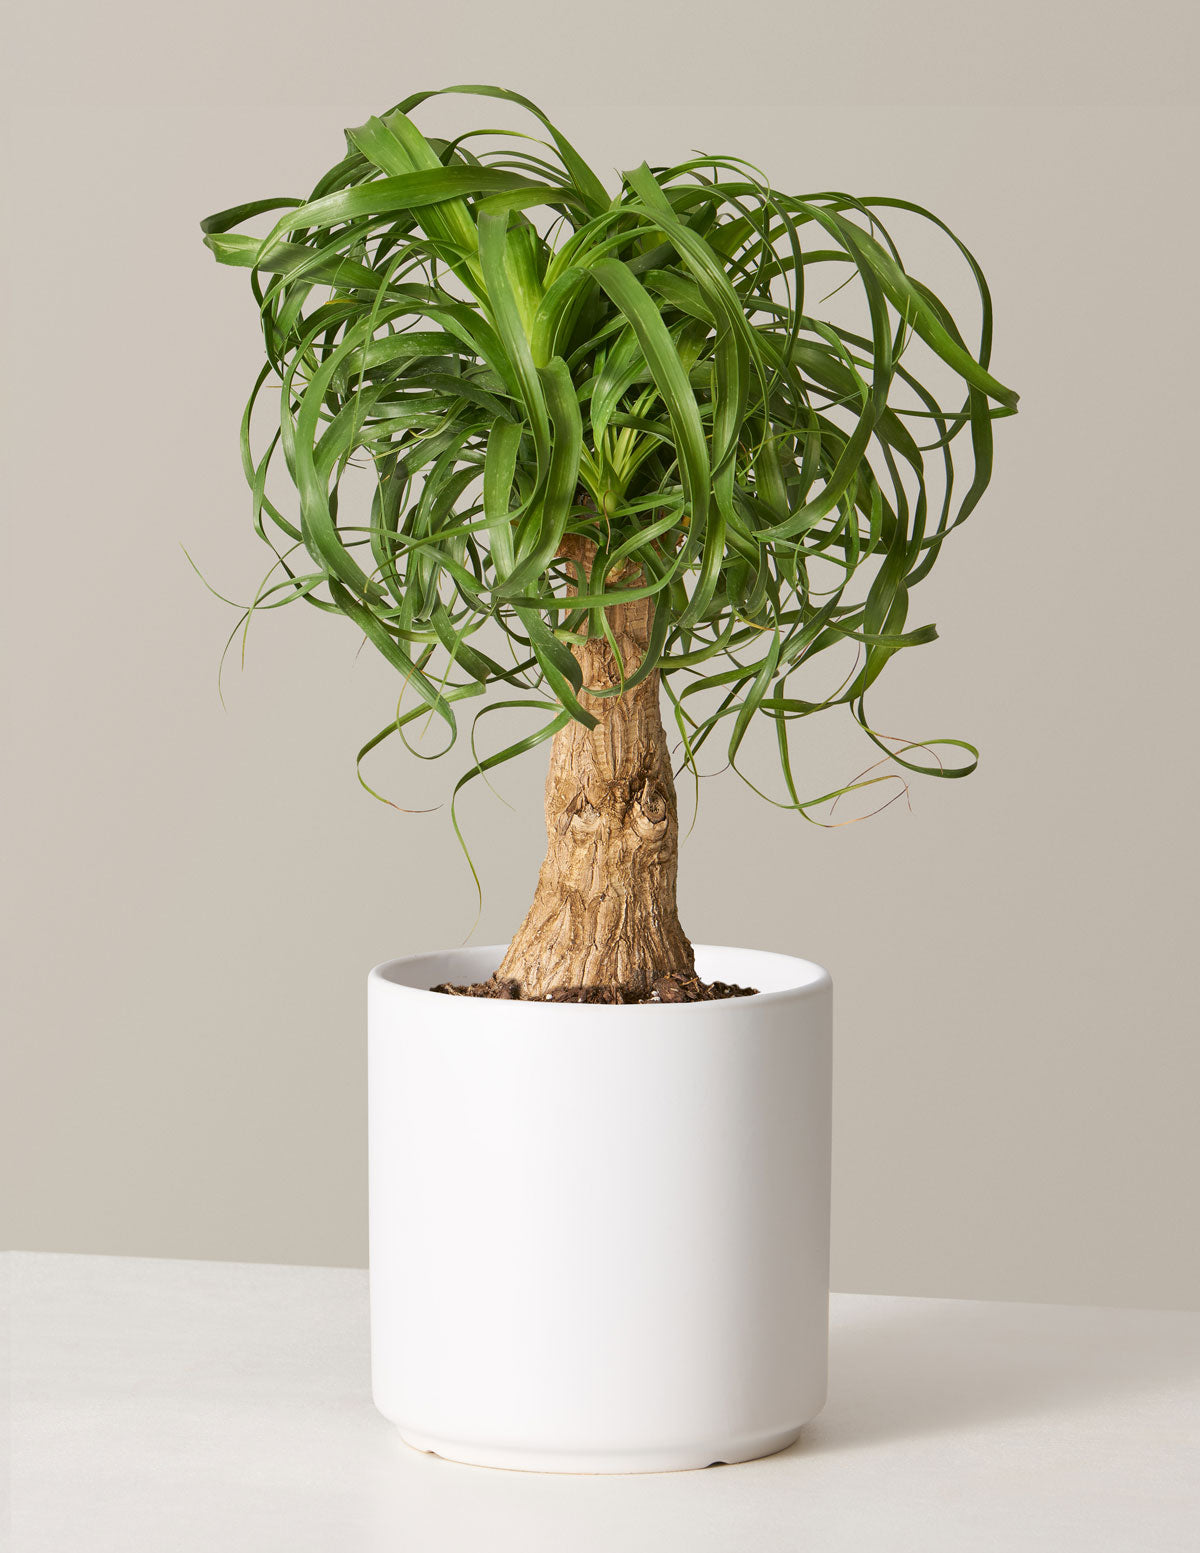 Ponytail Palm Houseplant Cyber Monday Indoor Plants For Delivery The Sill